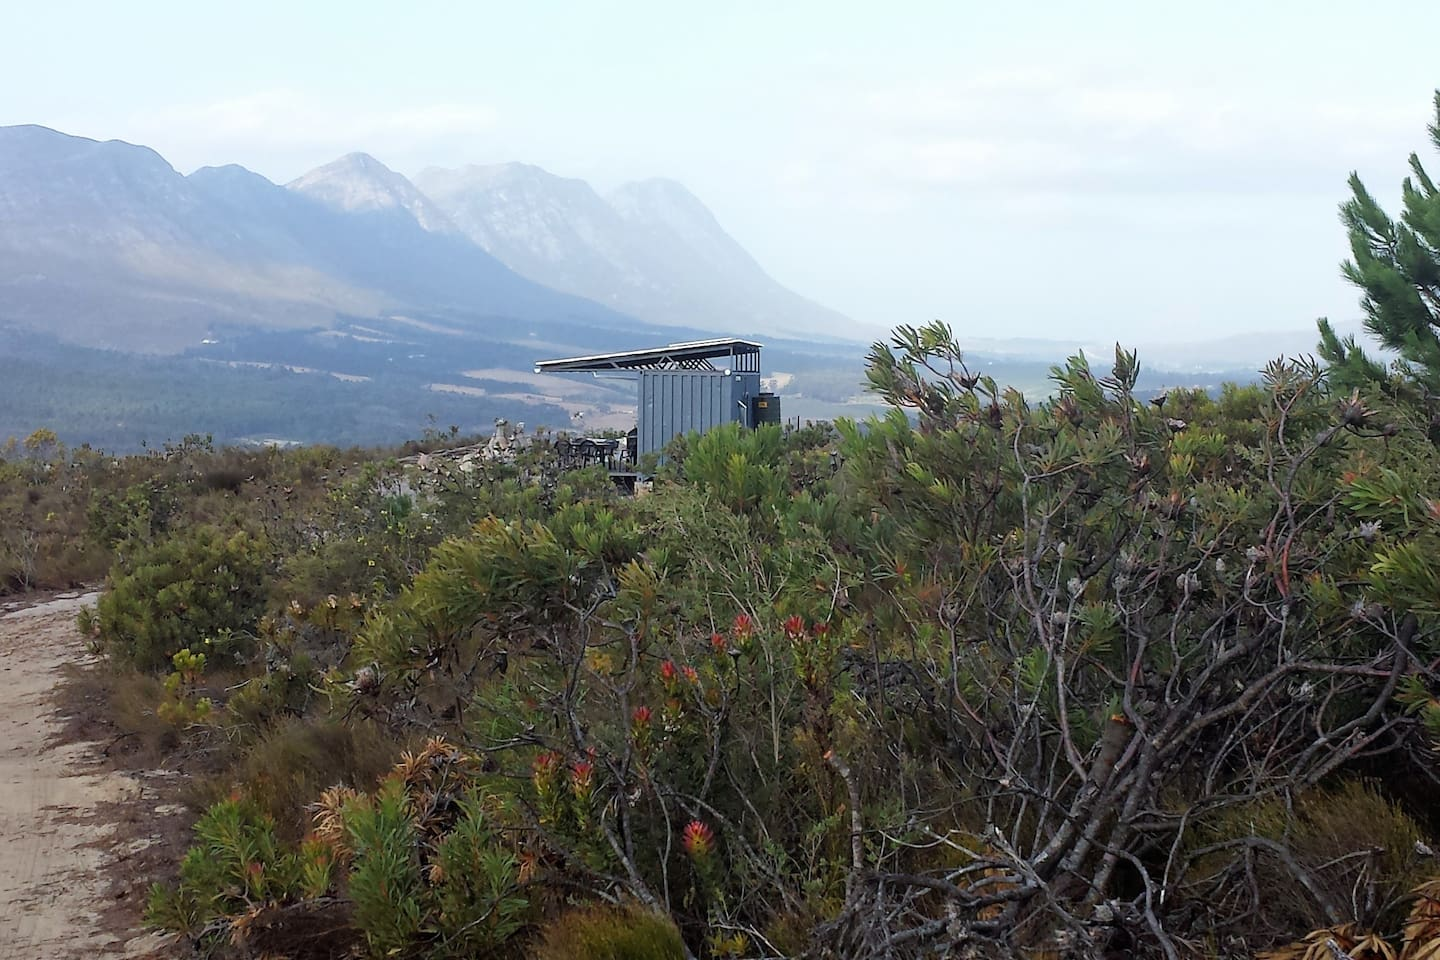 Square Elephant - off-grid, solar power, private and secluded, surrounded by nature.